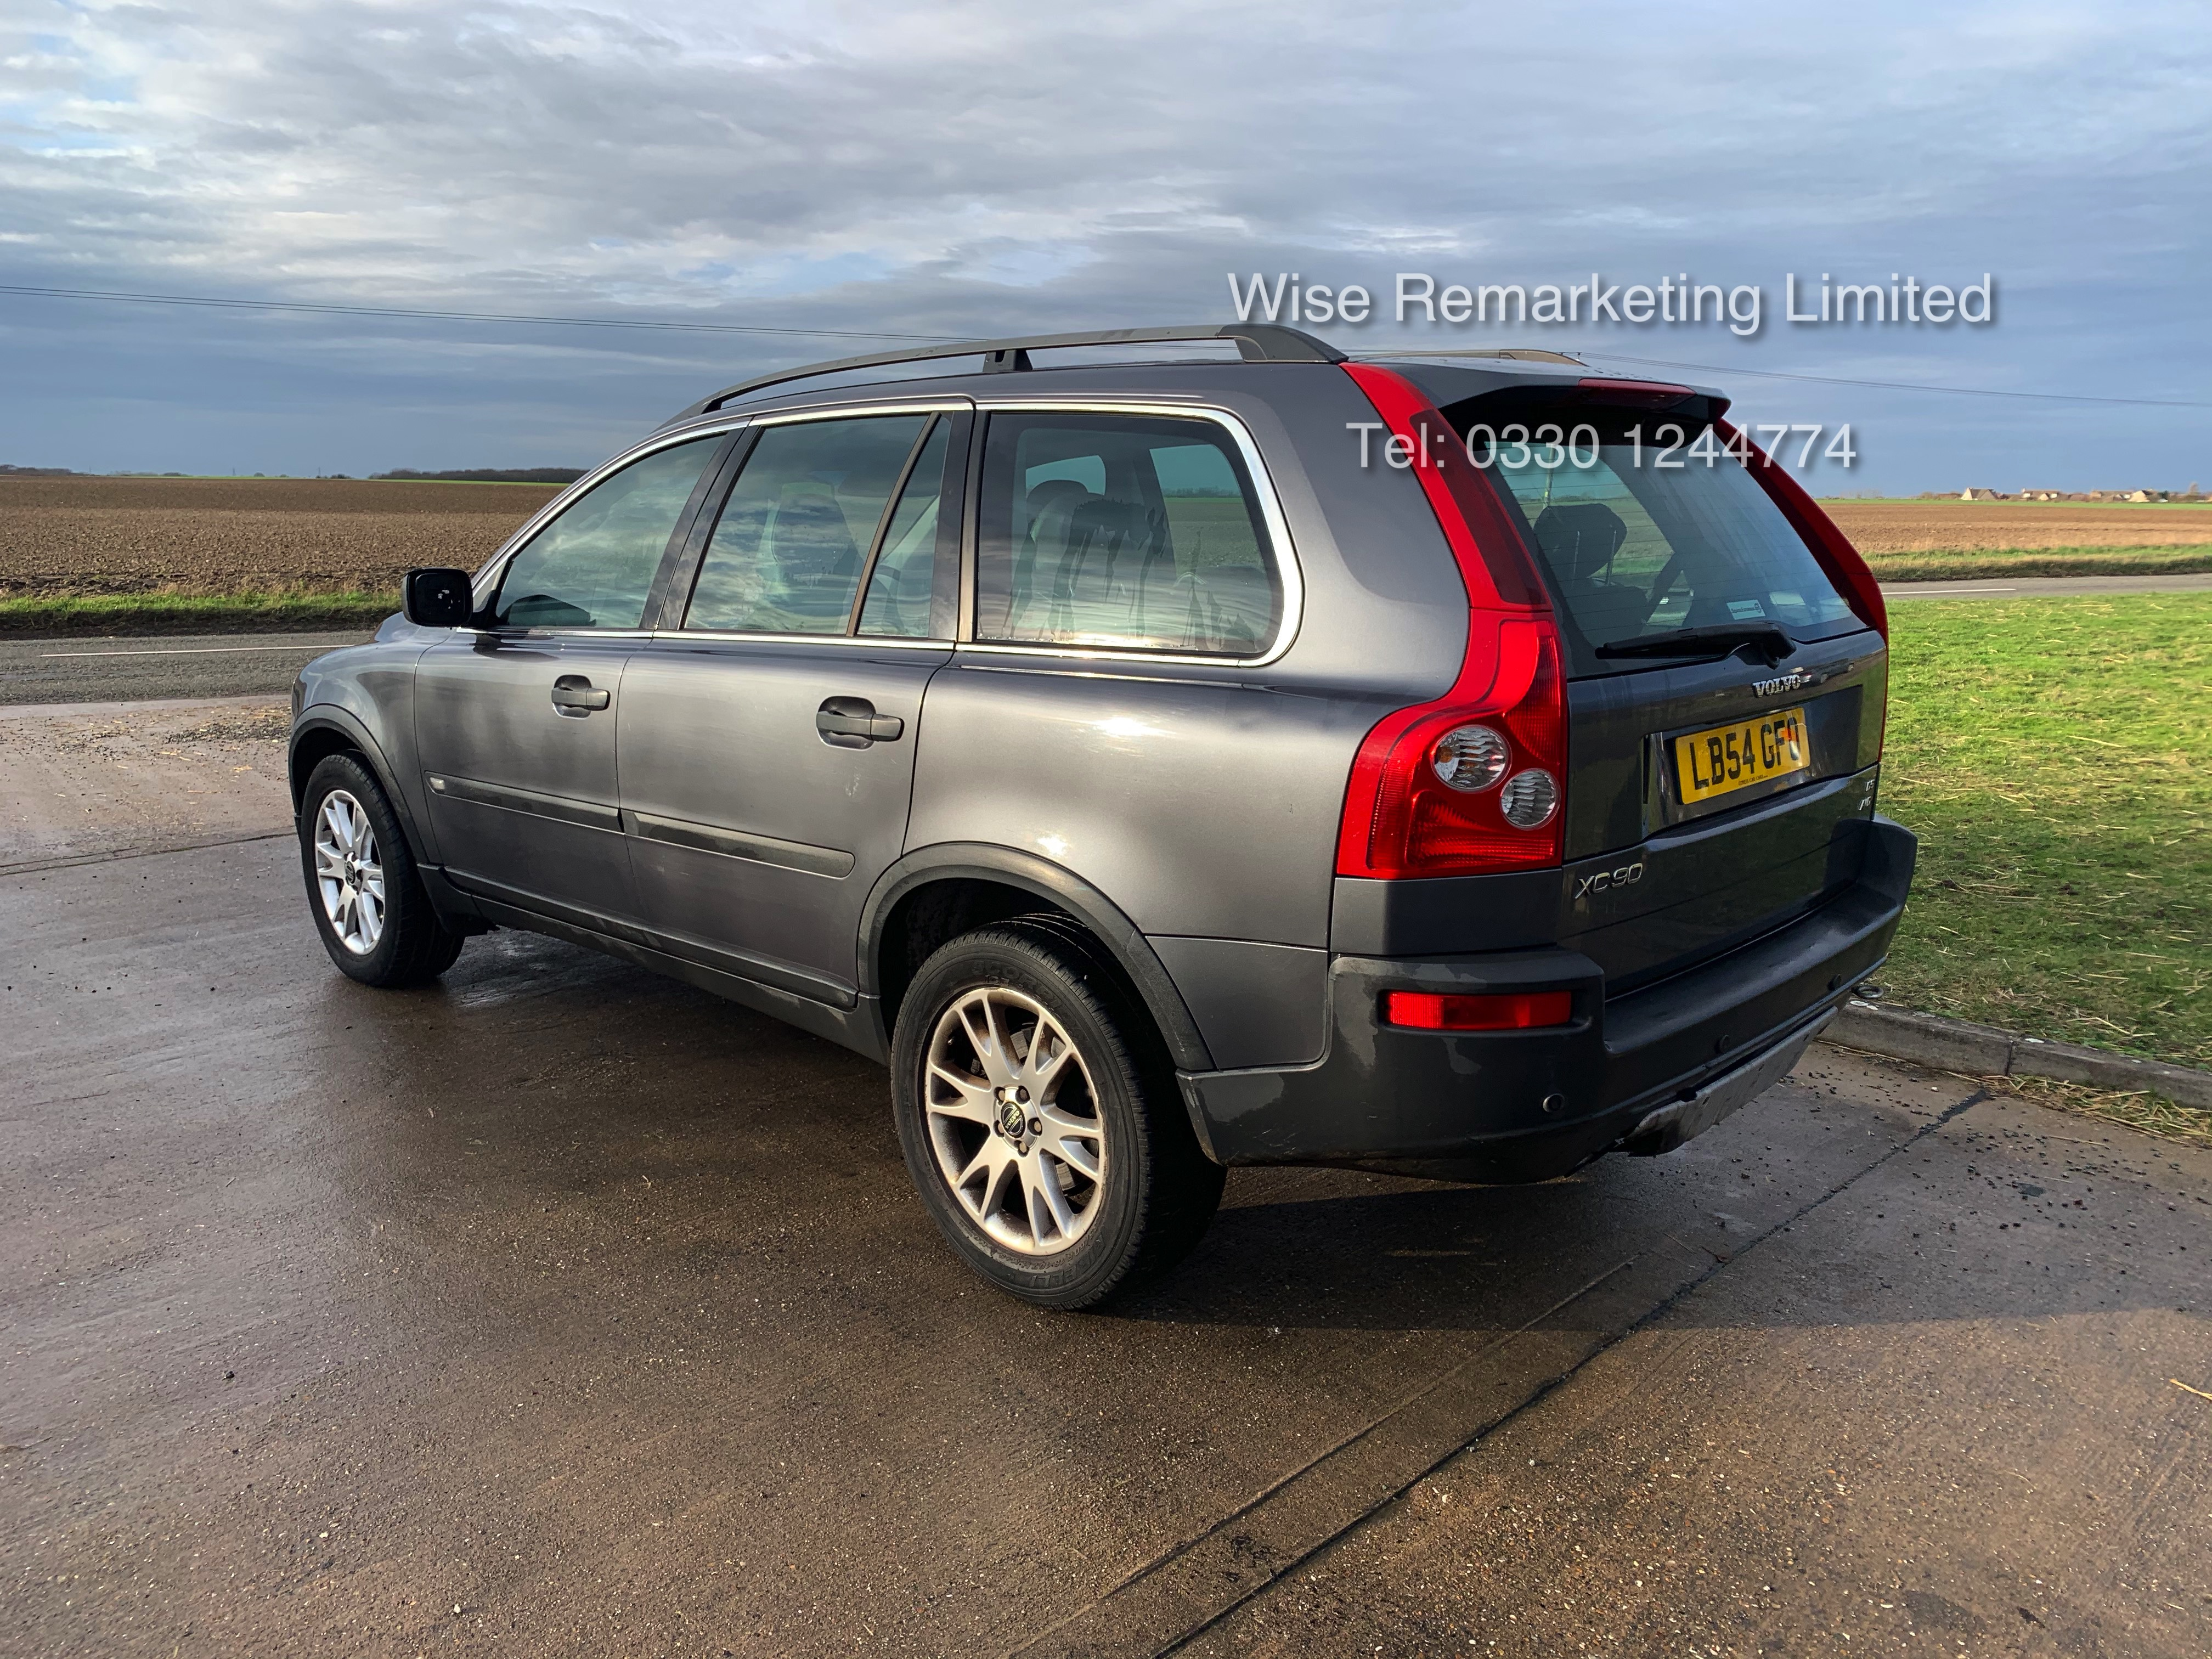 Volvo XC90 D5 2.4 Special Equipment Auto - 2005 Model - 7 Seater - Full Leather - - Image 6 of 21